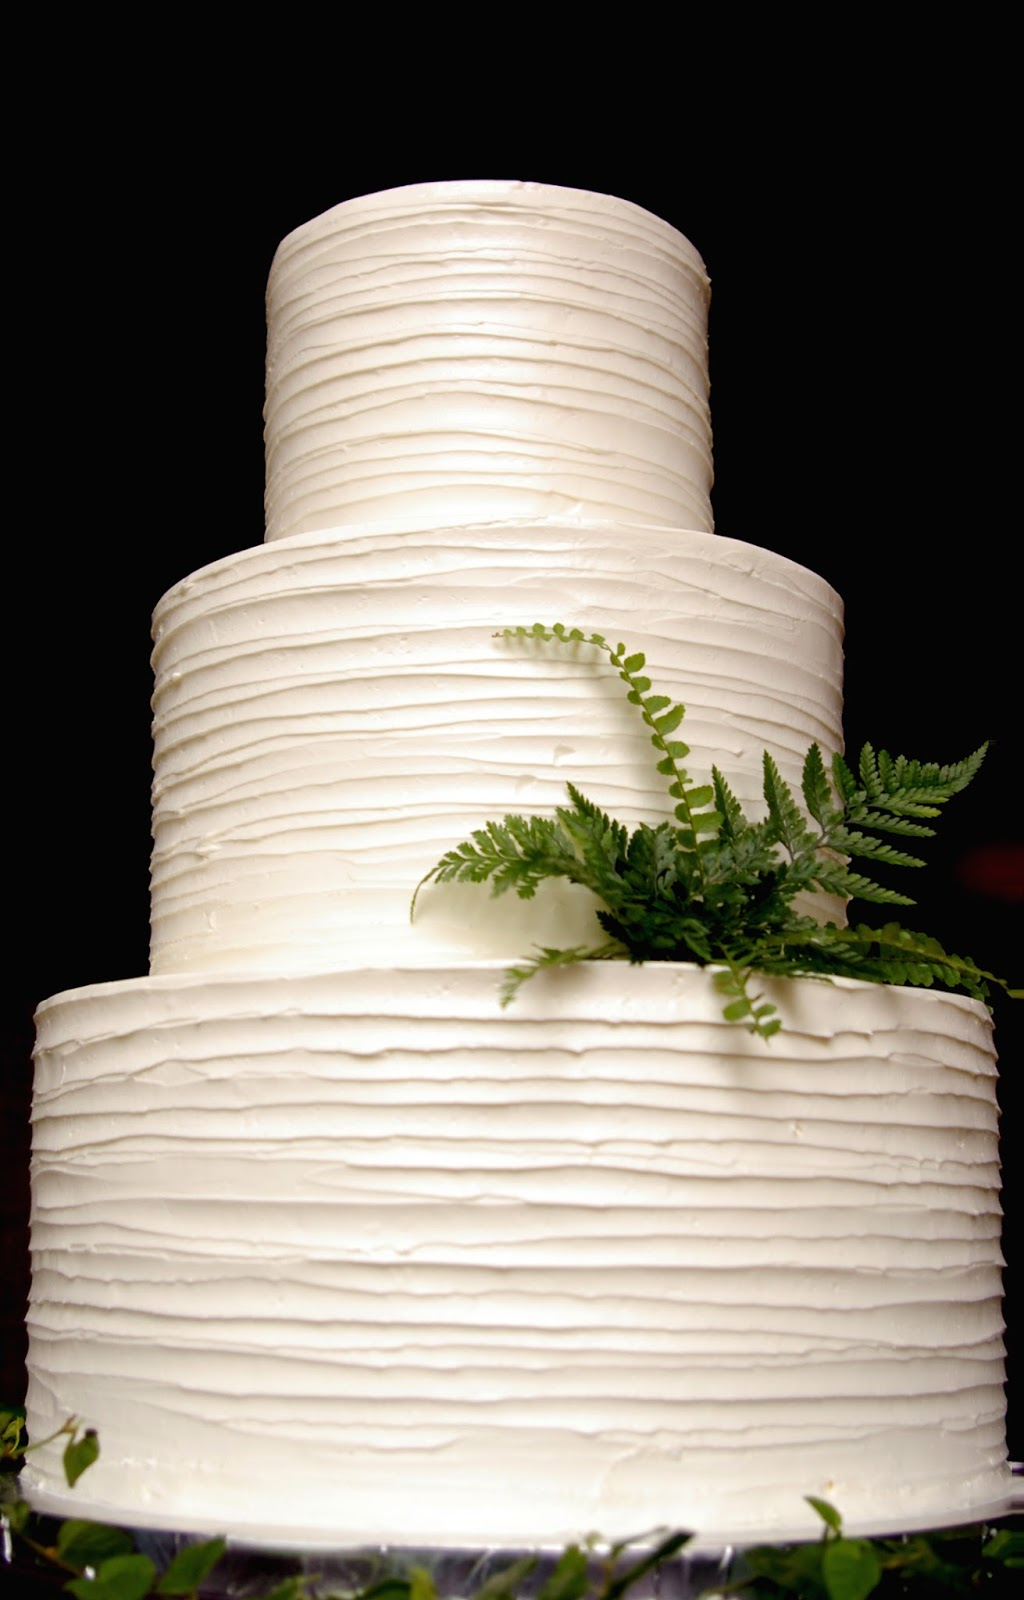 cake ideas on Pinterest  Buttercream Cake Wedding cakes and Buttercream Wedding Cake